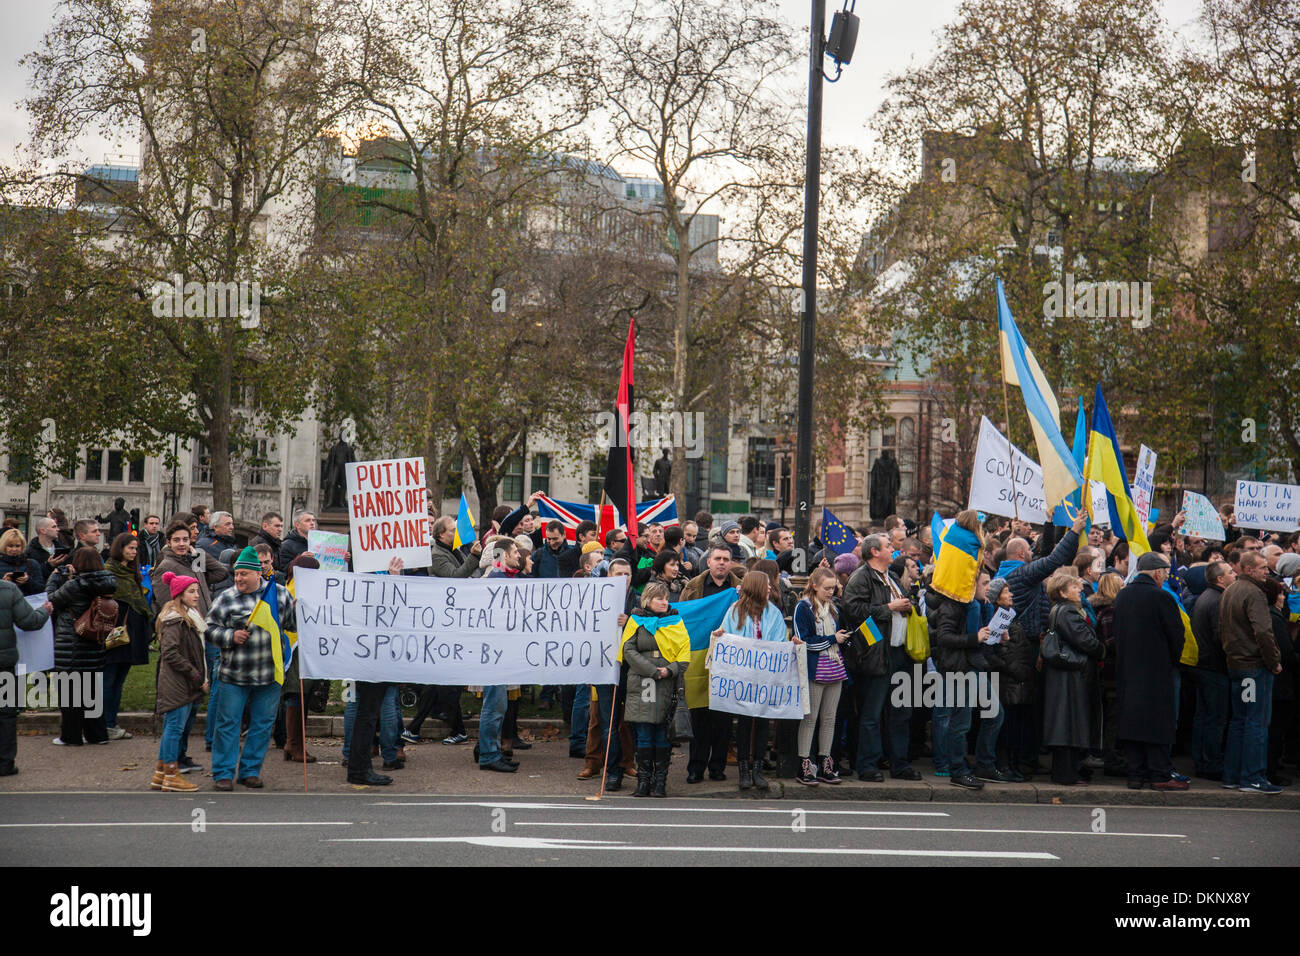 London, UK. 8th Dec, 2013. Ukranian Protest at Parliament Square, London, United Kingdom Credit:  galit seligmann/Alamy Live News - Stock Image